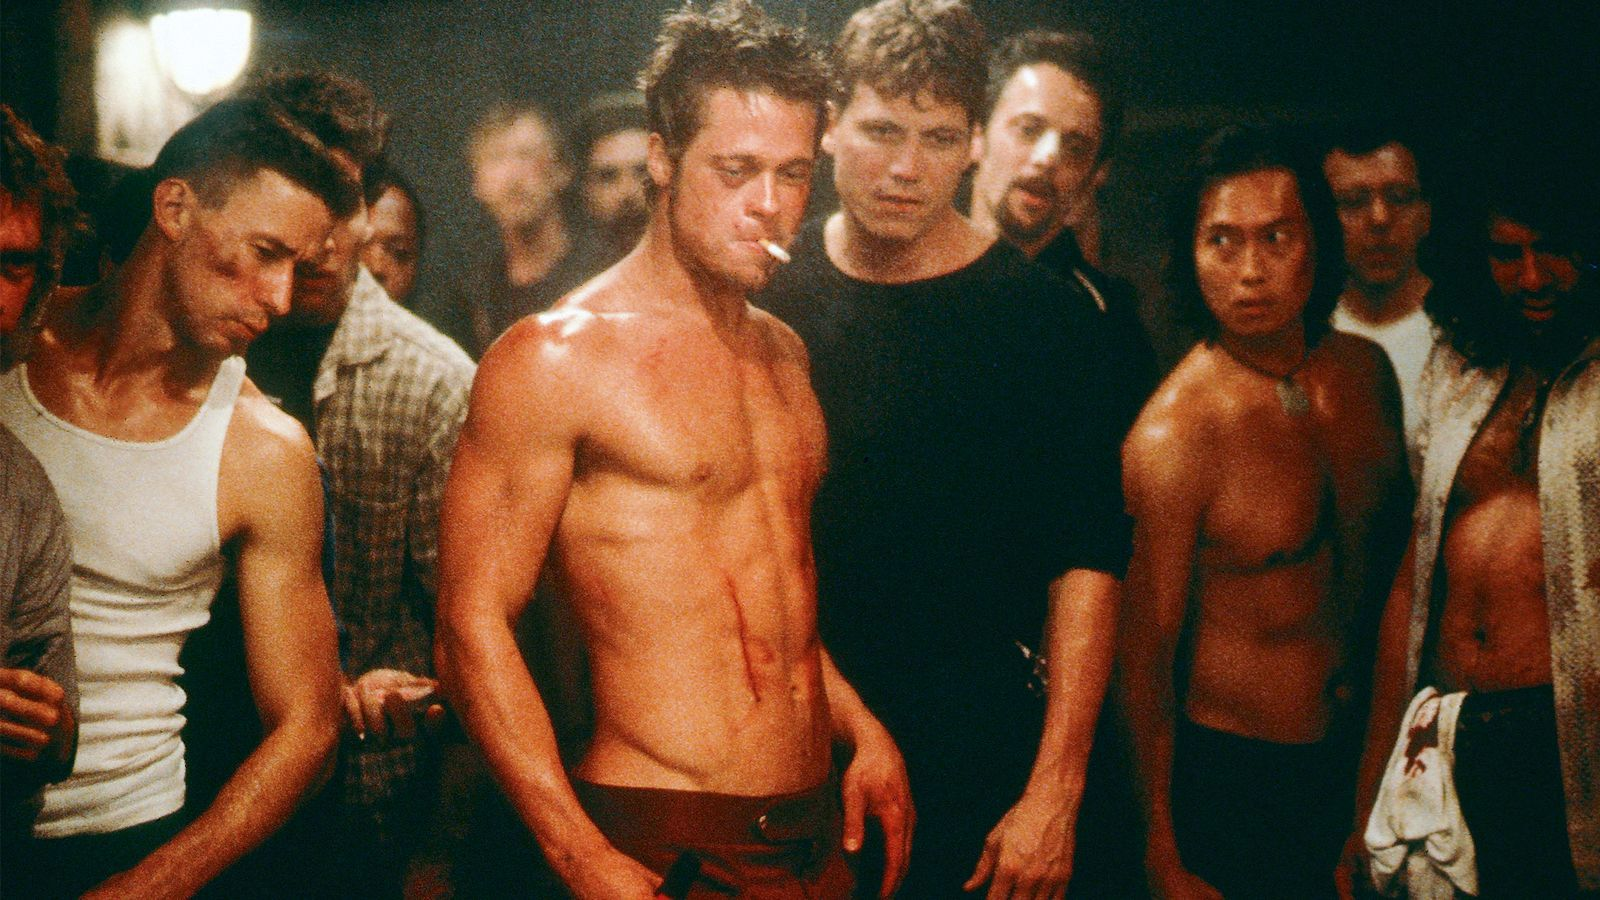 An Oral History of 'Fight Club', 20 Years Since Its Release